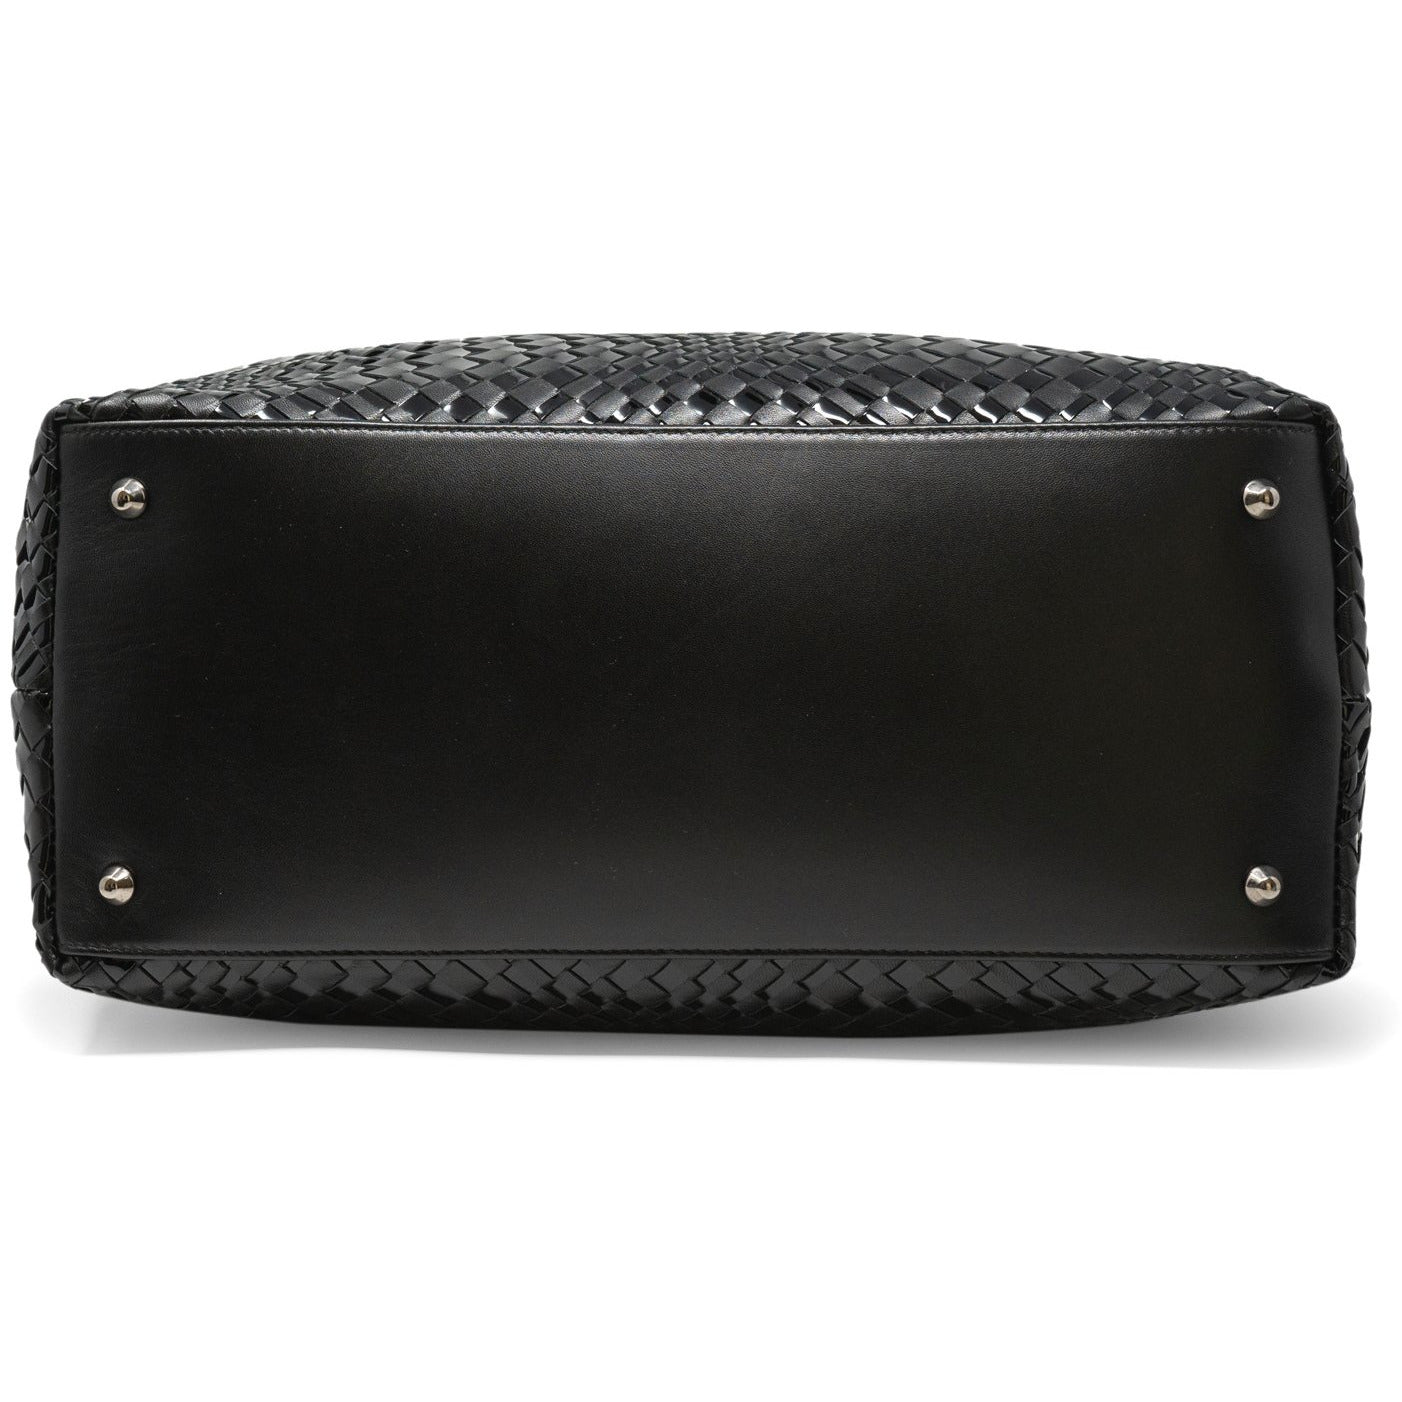 Sophia Maxi Intrecciato Zippered Bag in Black Patent Leather - Jennifer Tattanelli